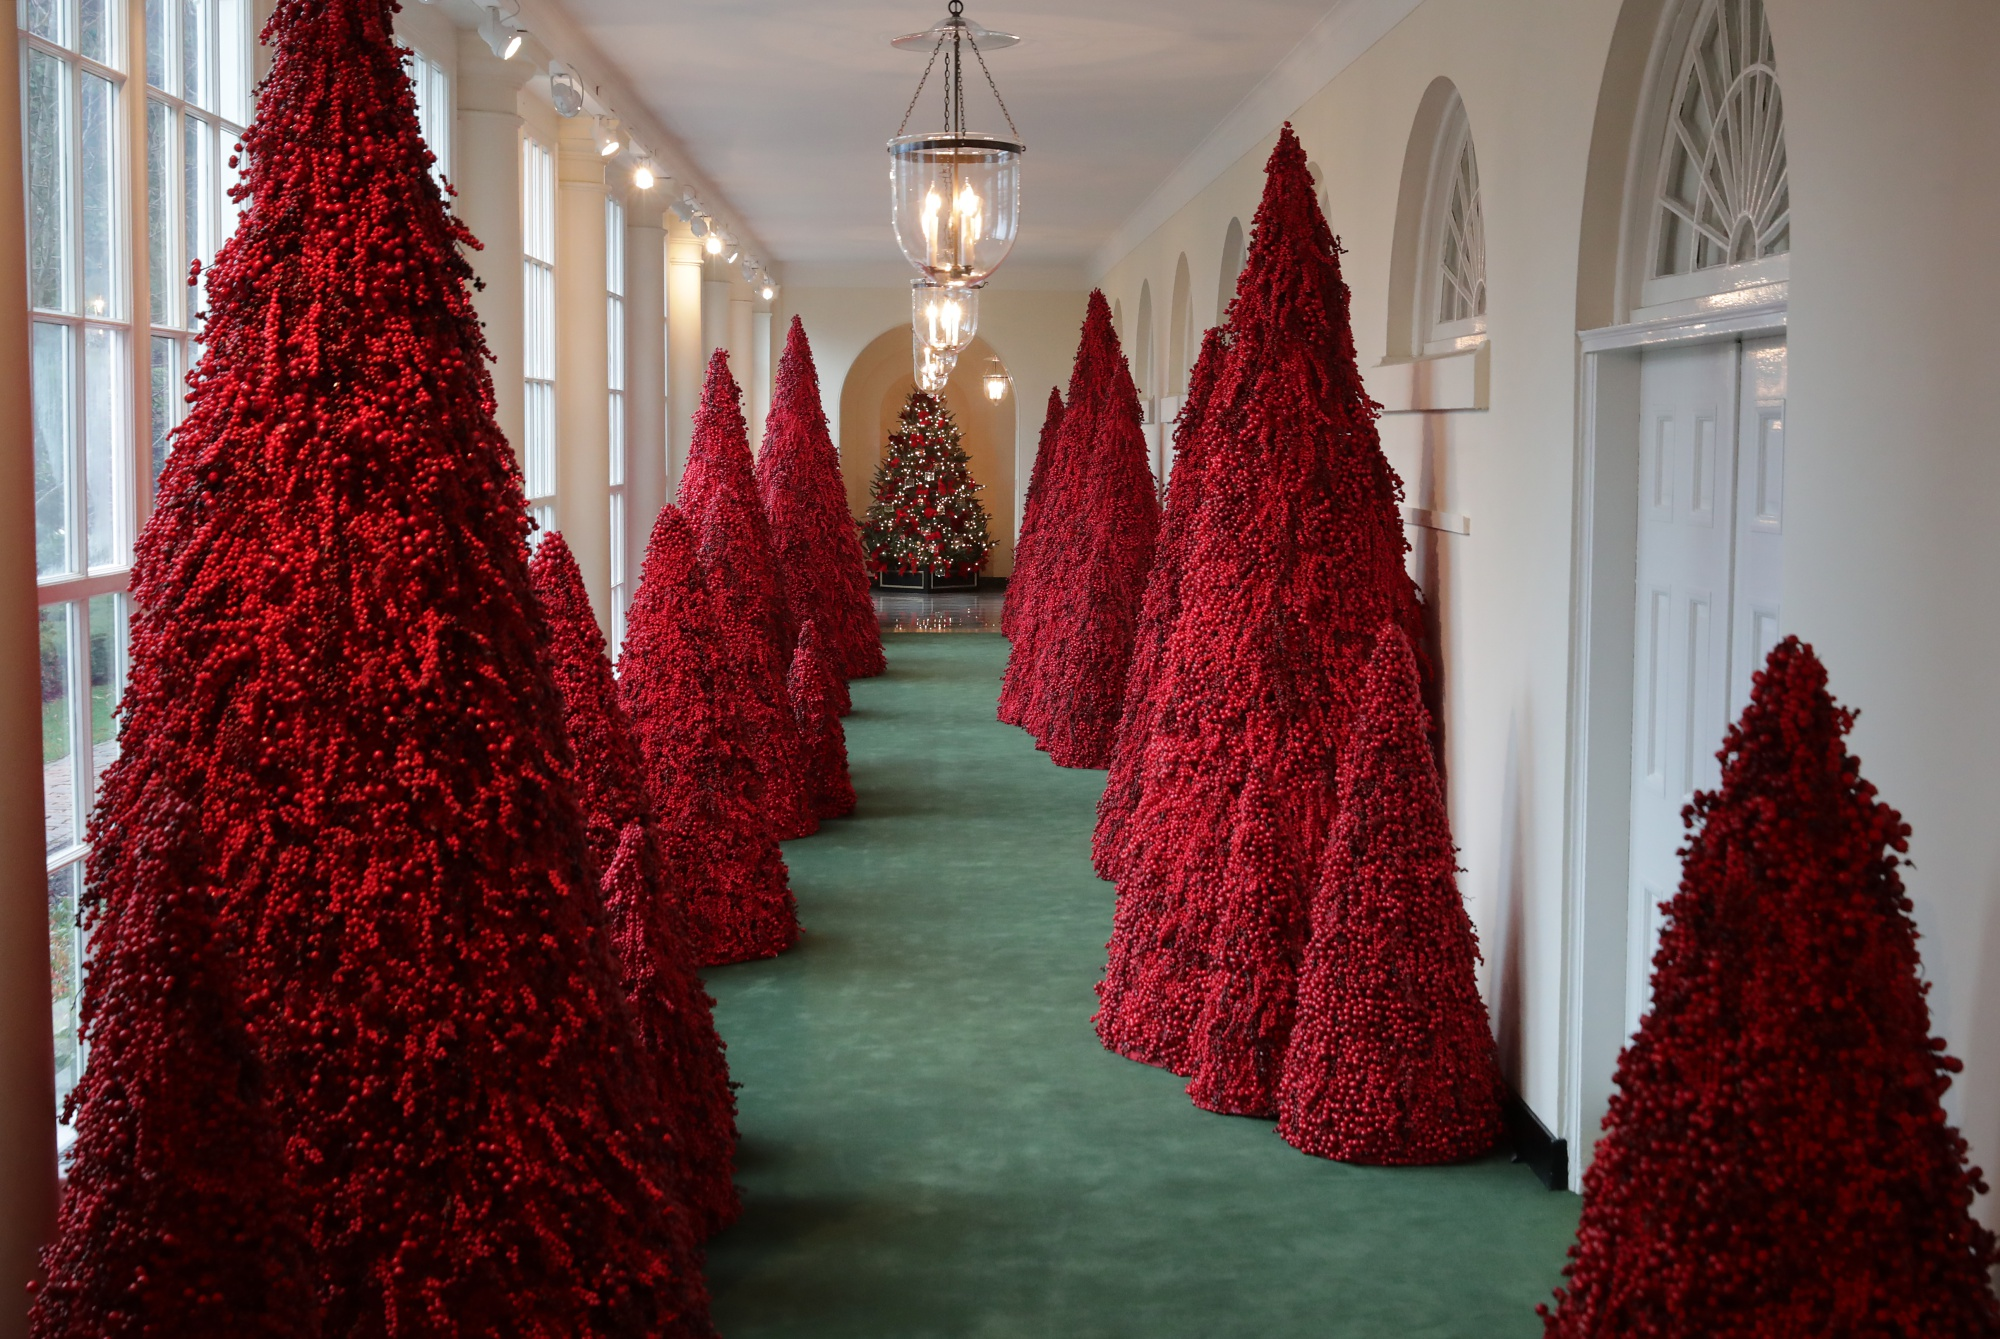 2018 White House Christmas Decorations – Bloomberg